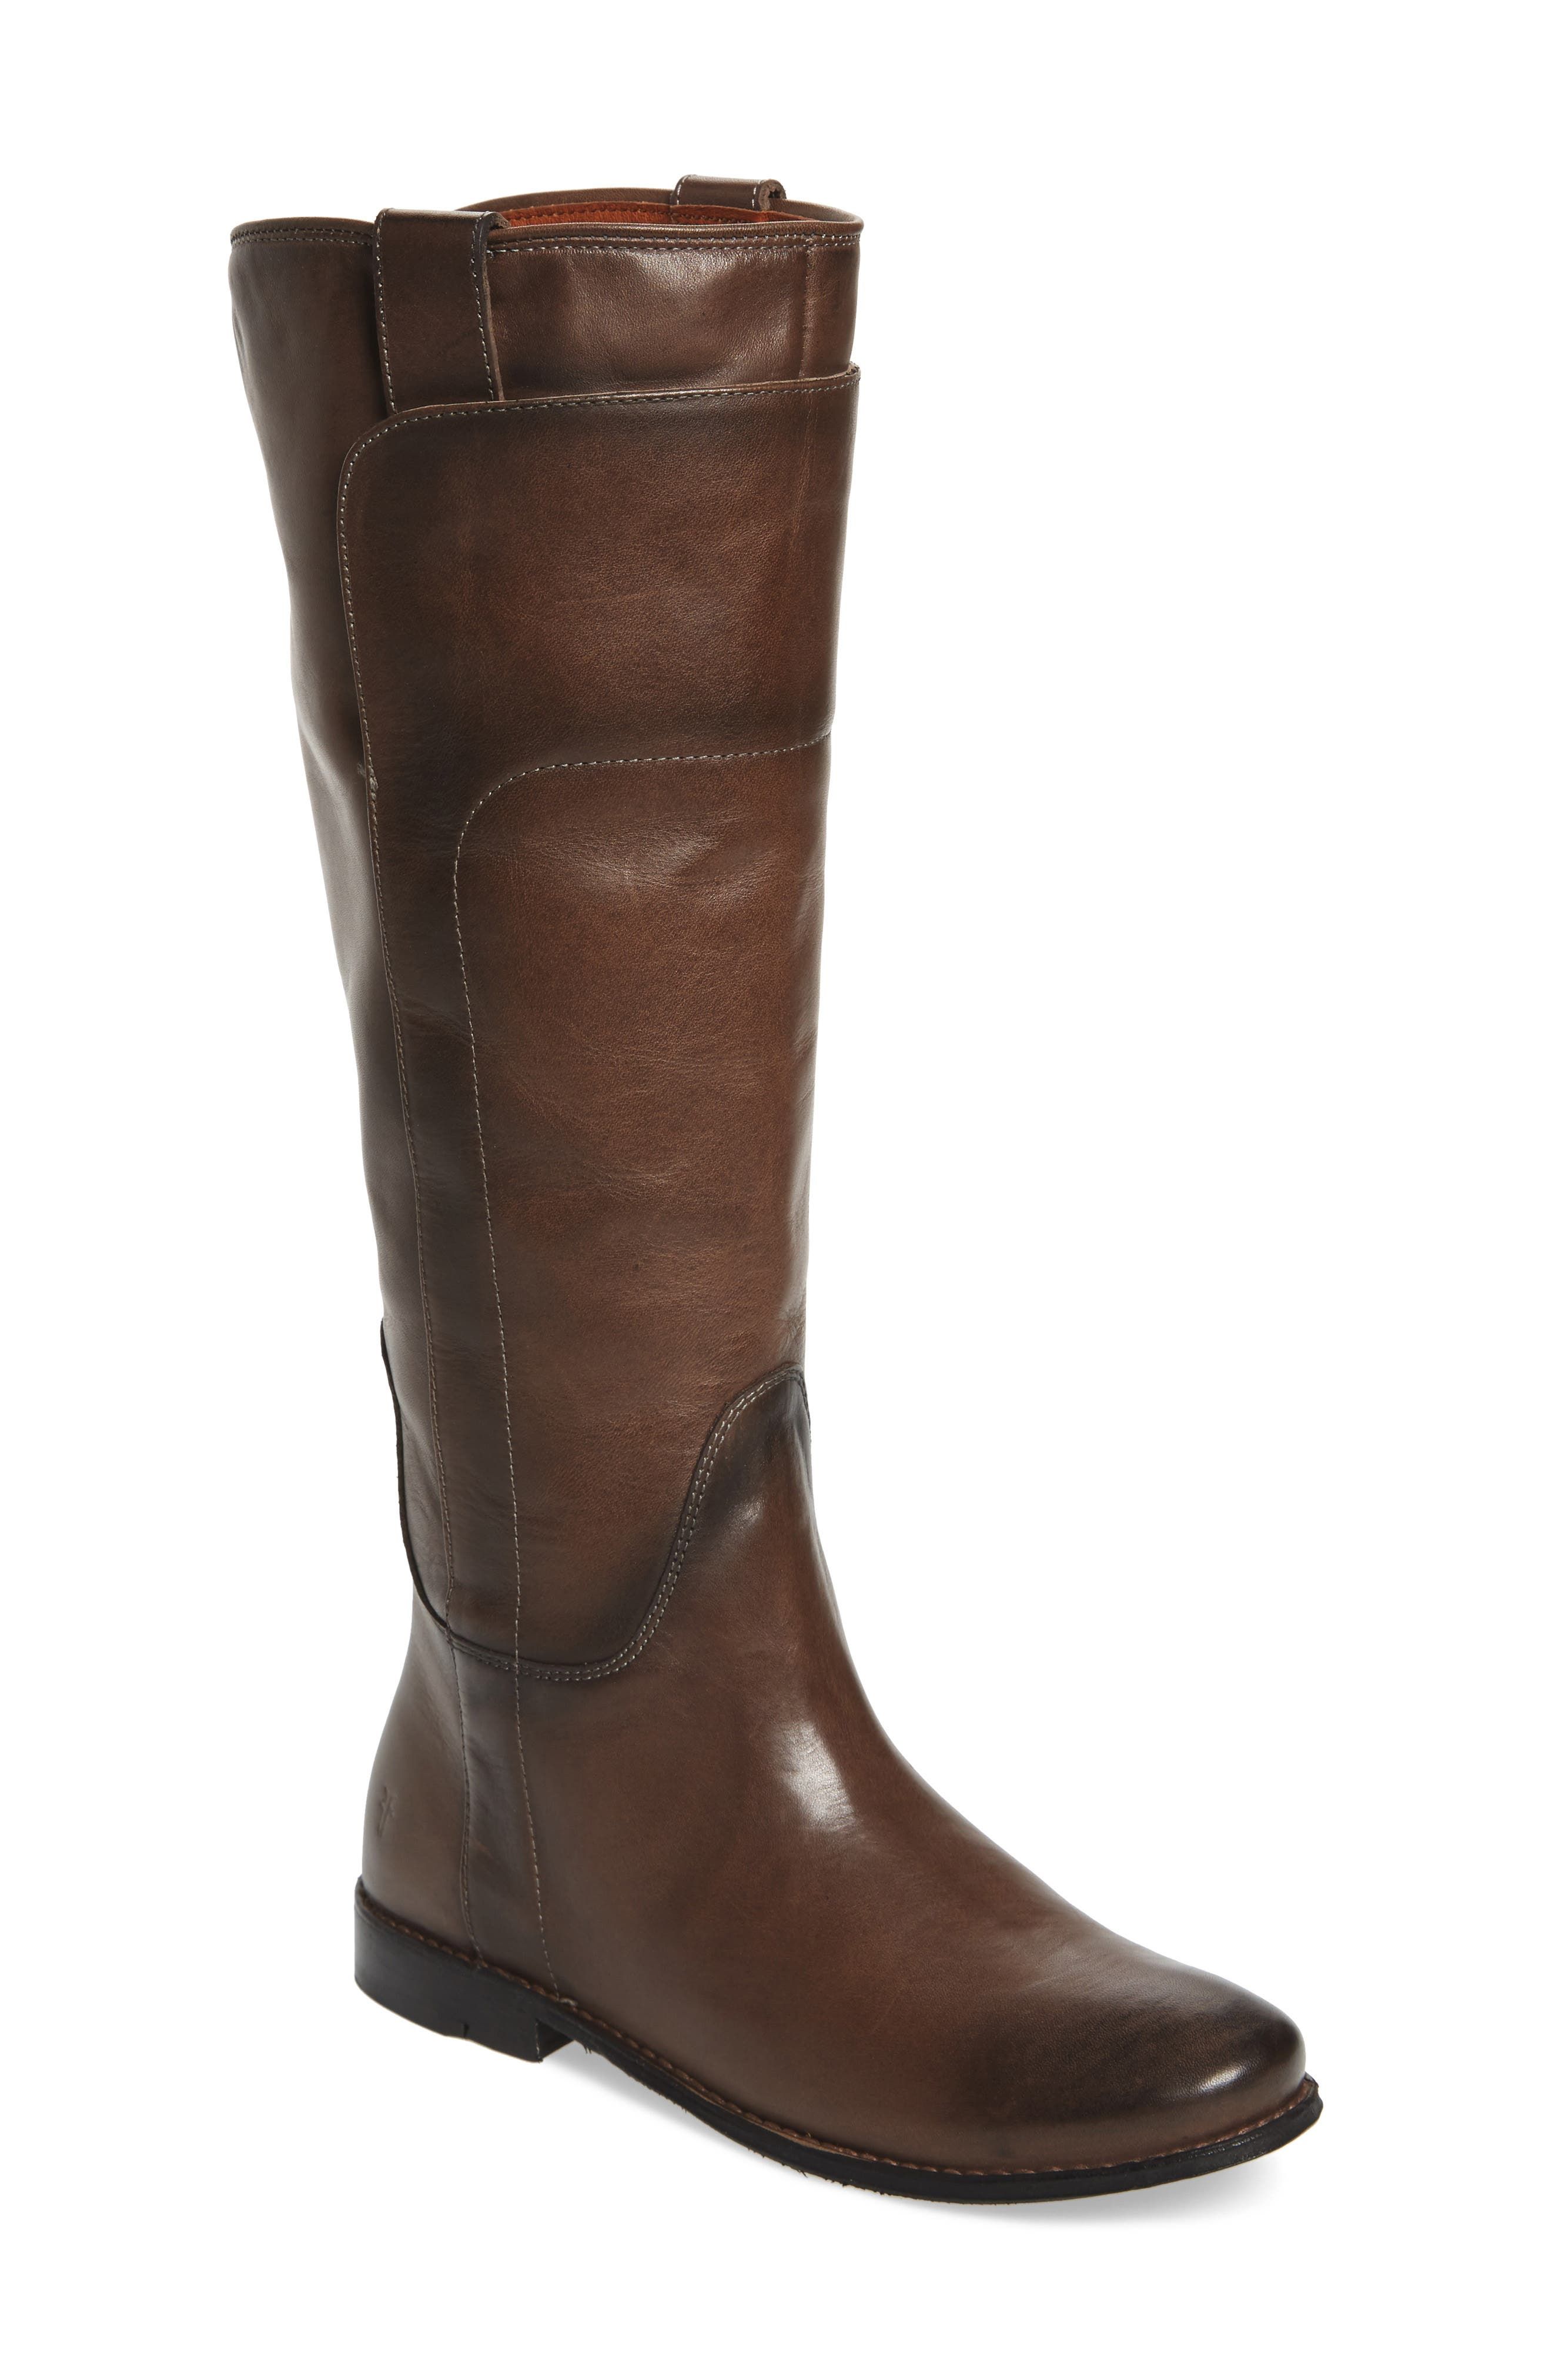 Paige Tall Riding Boot,                             Main thumbnail 1, color,                             020